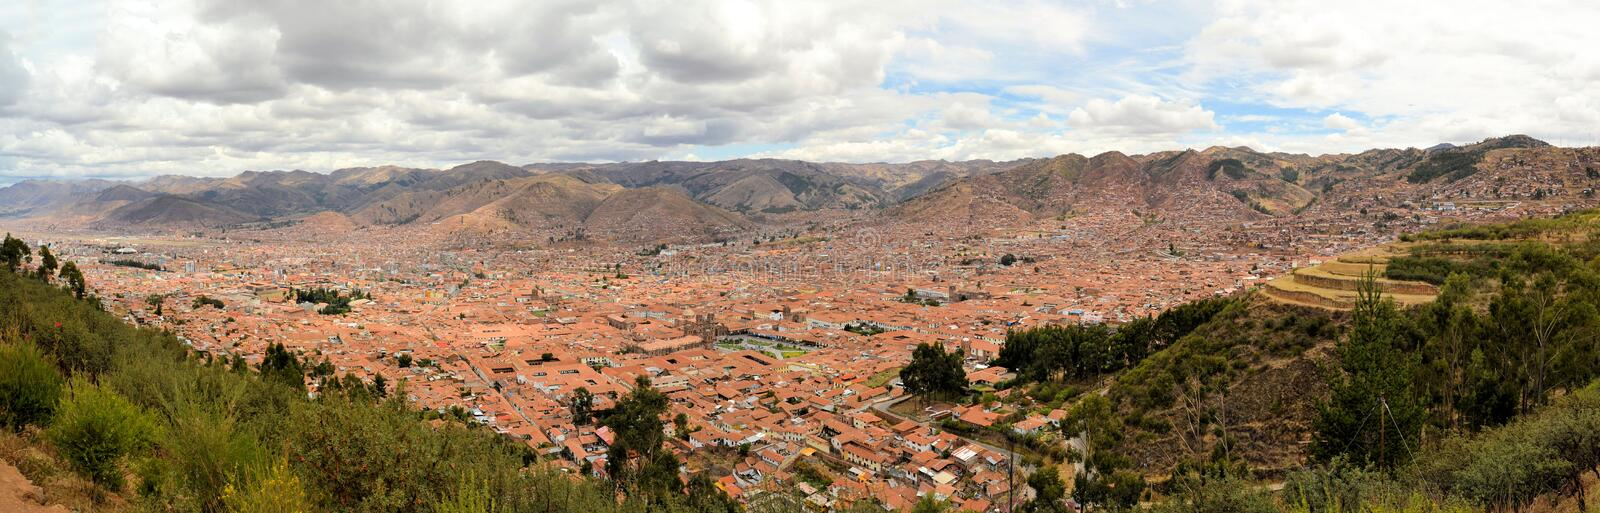 Aerial view of Cuzco, Peru, South America royalty free stock photos